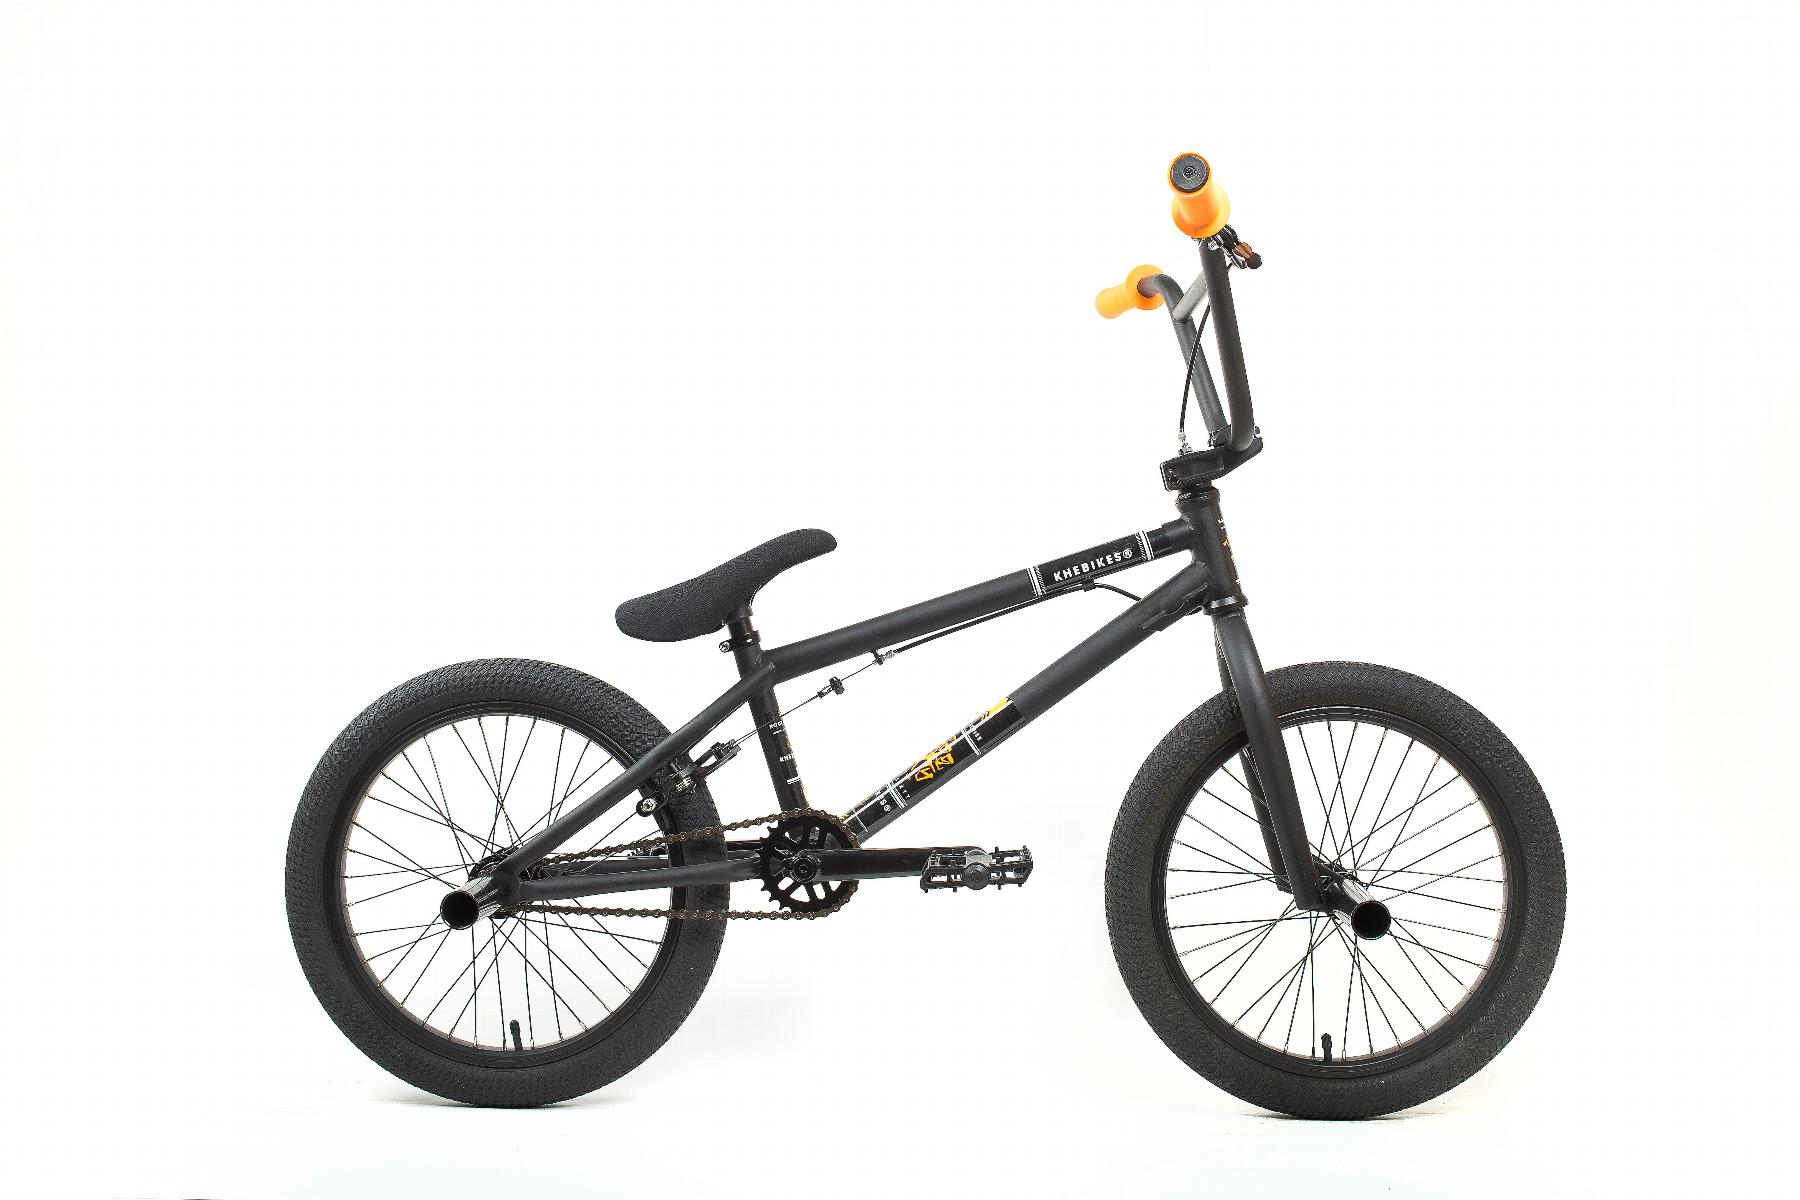 KHE Root 360 18 BMX Bicycle by Cycle Force Group